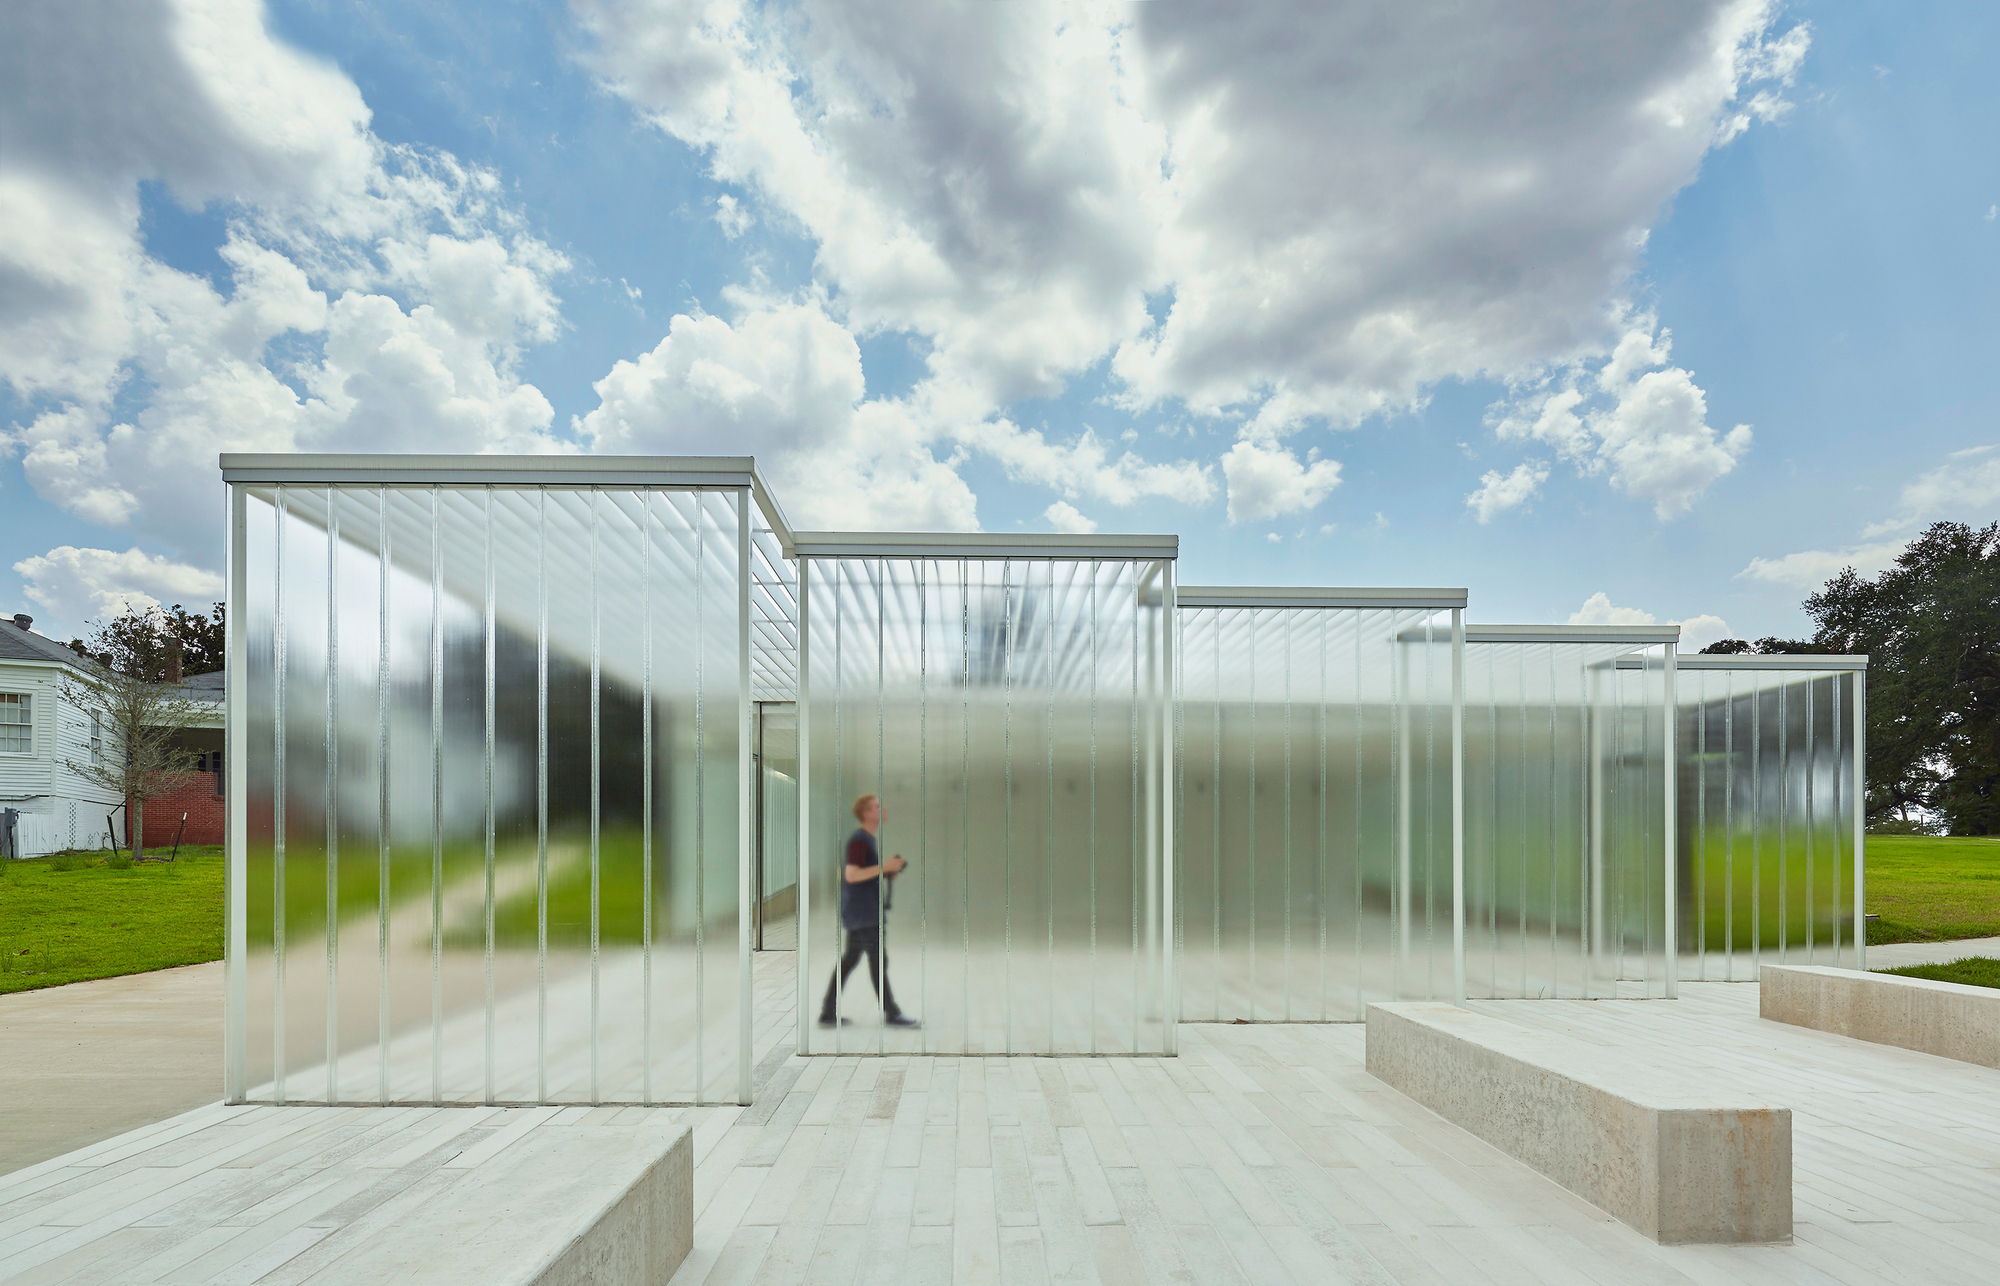 Baton rouge tag archdaily magnolia mound visitors center trahan architects dailygadgetfo Choice Image